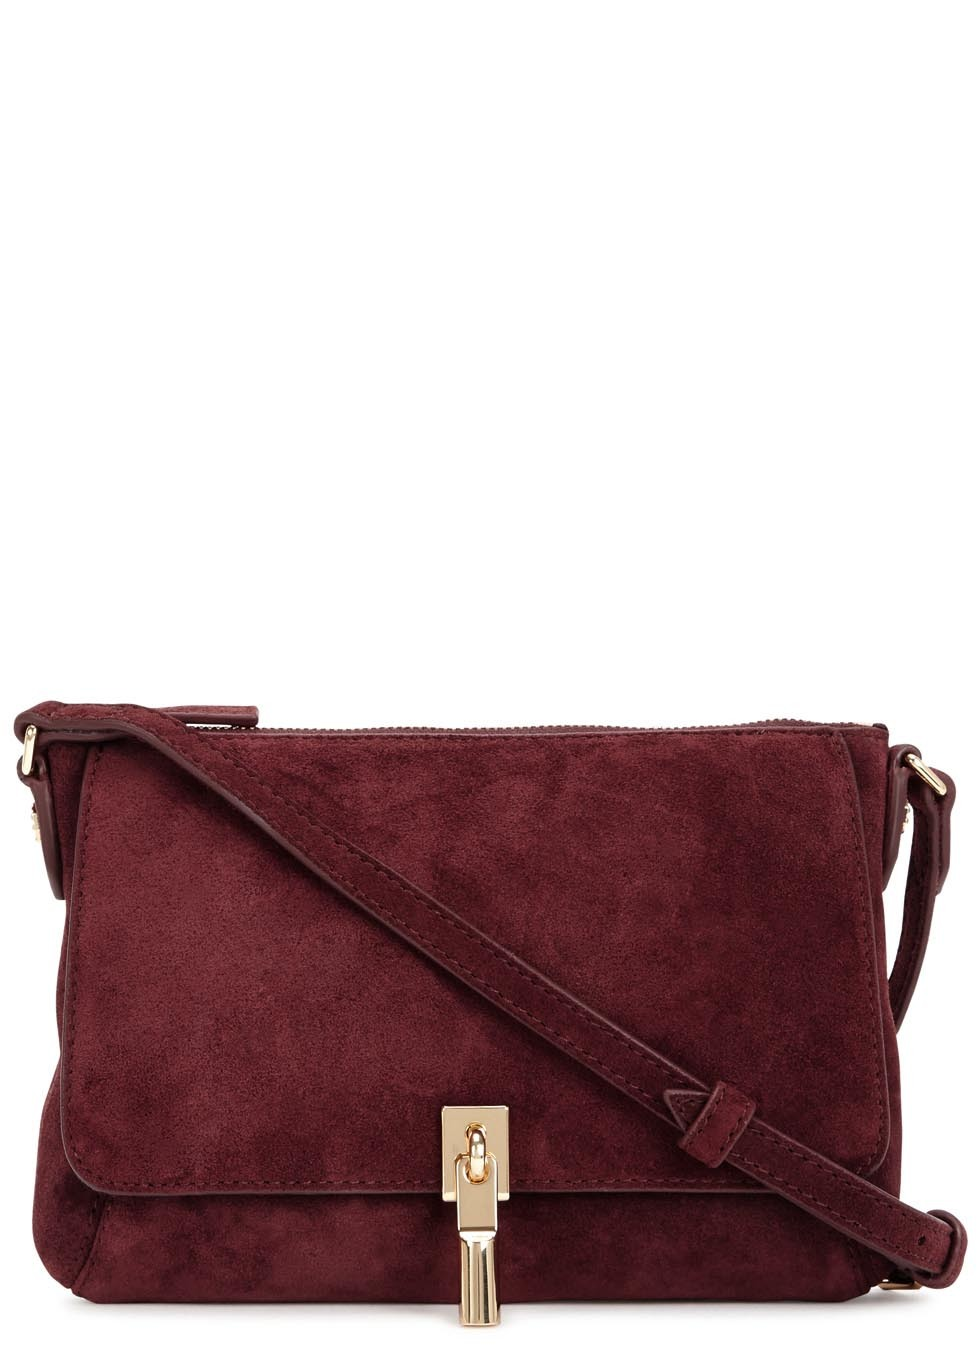 Cynnie Micro Burgundy Suede Cross Body Bag - predominant colour: burgundy; occasions: casual, creative work; type of pattern: standard; style: shoulder; length: across body/long; size: standard; material: suede; pattern: plain; finish: plain; season: s/s 2016; wardrobe: highlight